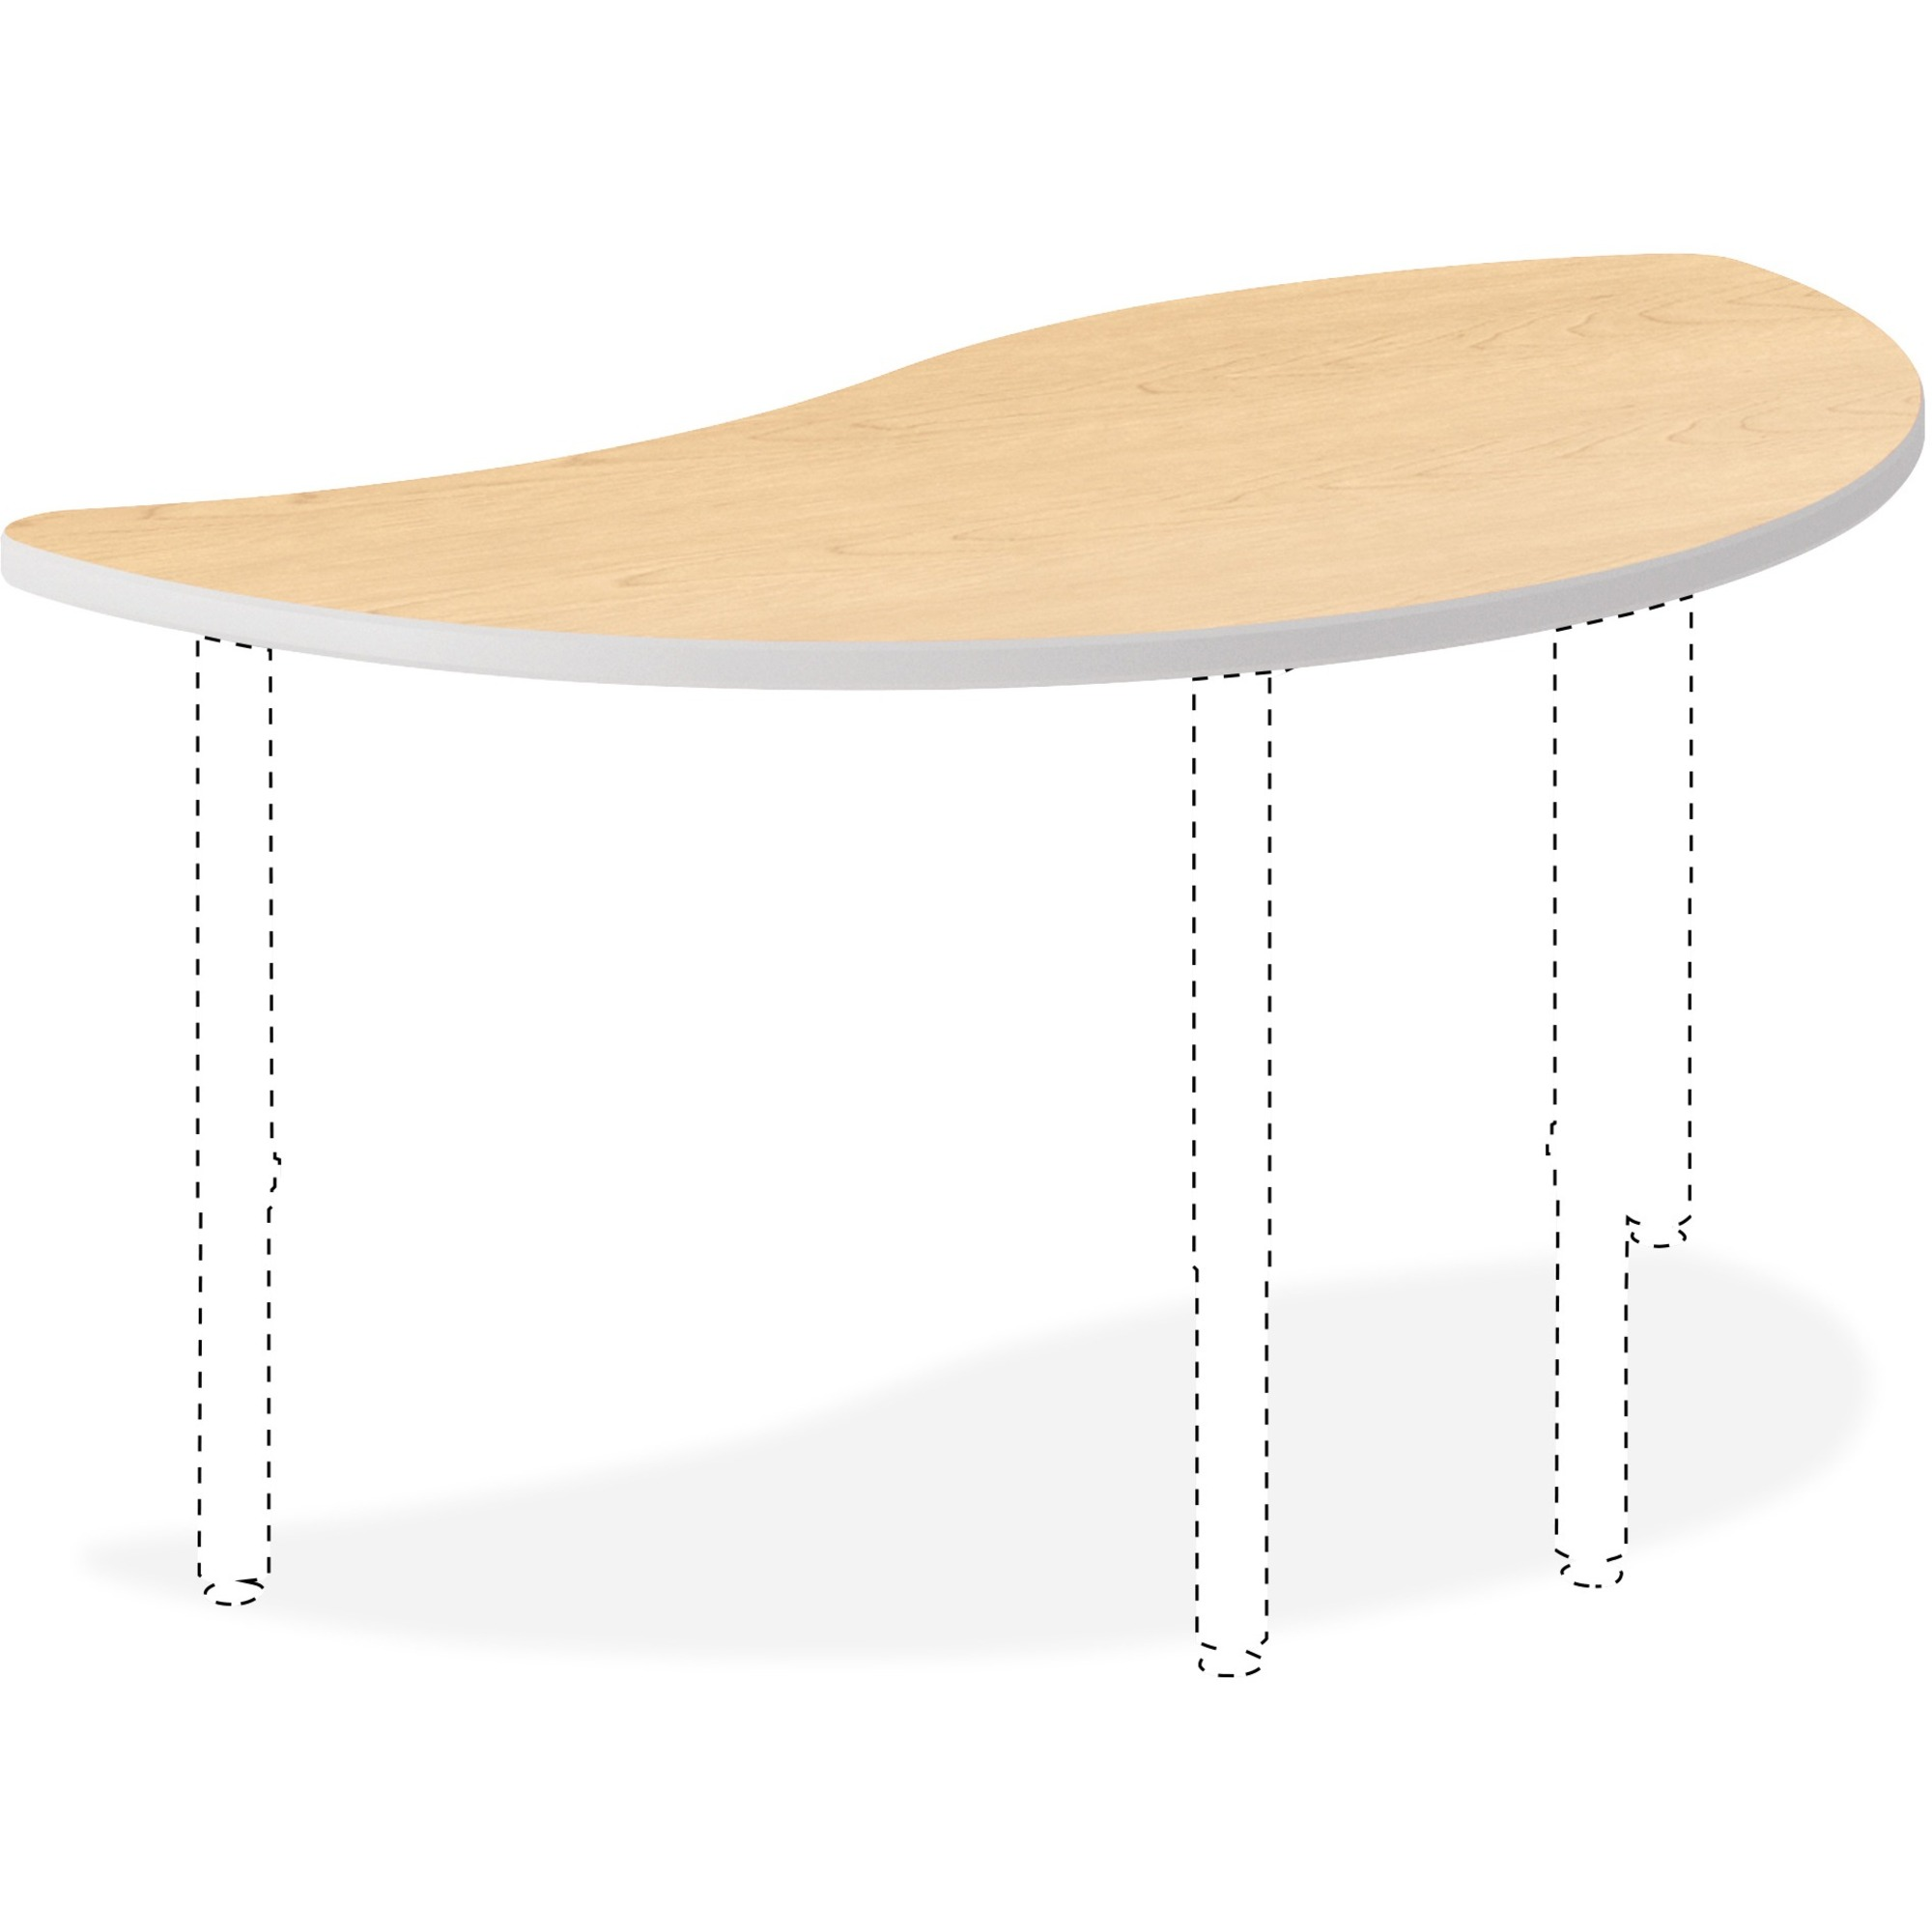 Swell The Hon Company Hon Build Wisp Table 50W X 30D Natural Maple Wisp Top 54 Table Top Length X 30 Table Top Width X 1 13 Table Top Thickness Bralicious Painted Fabric Chair Ideas Braliciousco